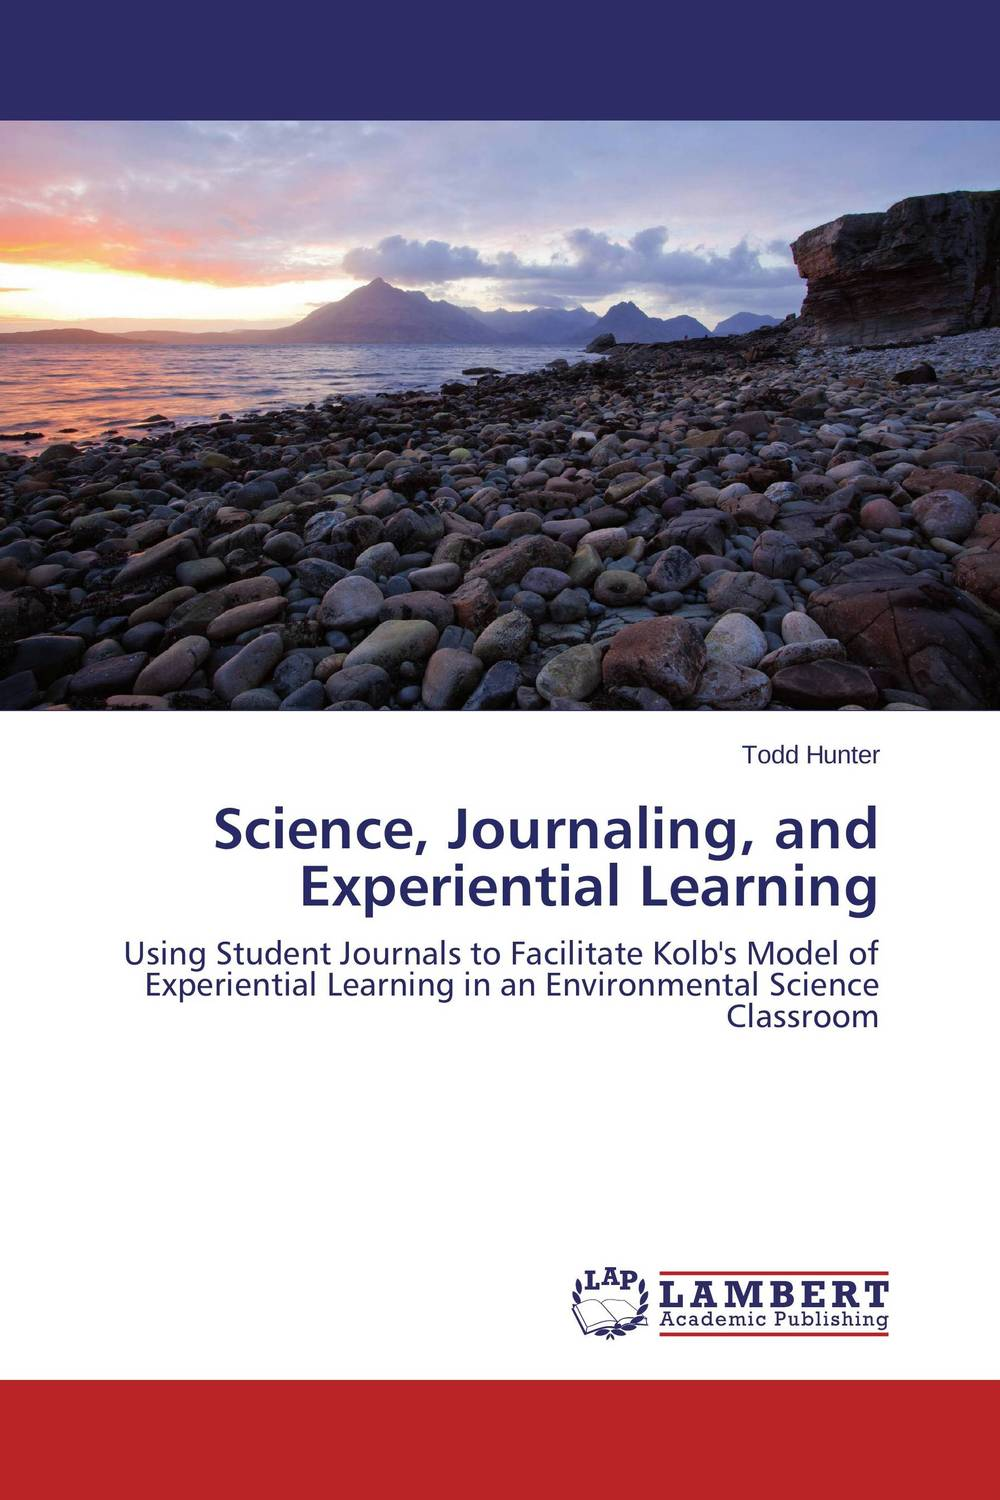 Science, Journaling, and Experiential Learning deborah meier differentiated assessment how to assess the learning potential of every student grades 6 12